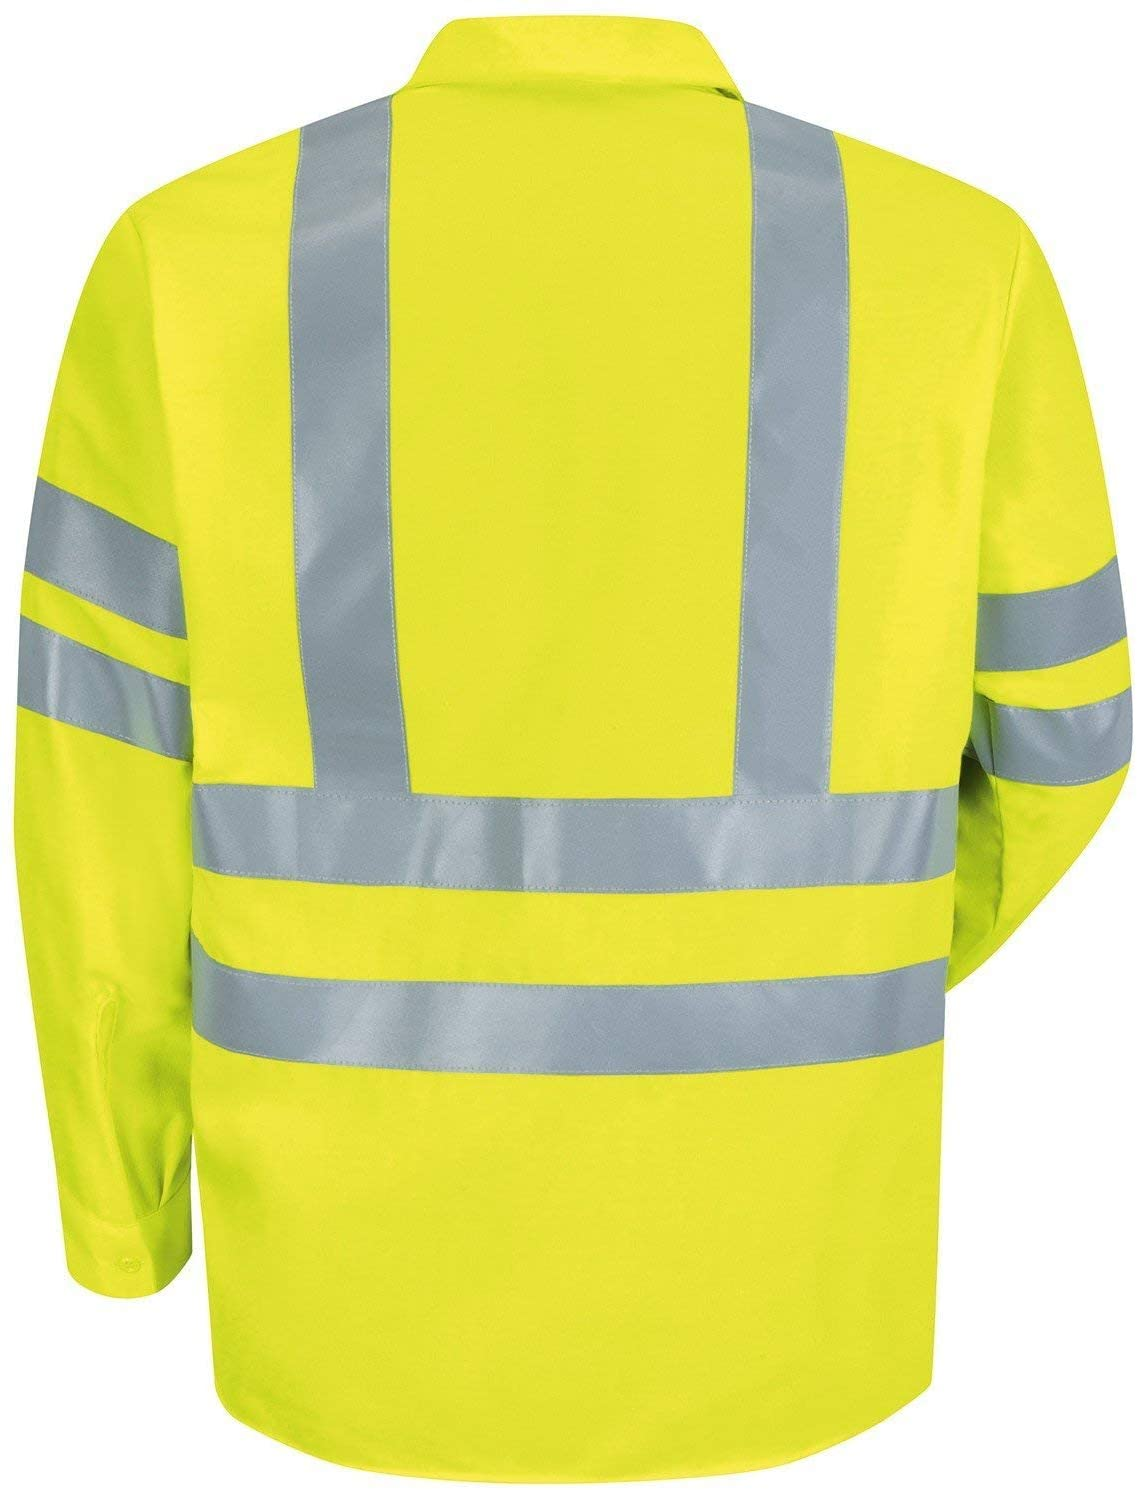 Brite Safety Style 240 Long Sleeve Safety Work Shirt with Pocket - ANSI Class 3 Compliant - Moisture Wicking Shirt for Men & Women